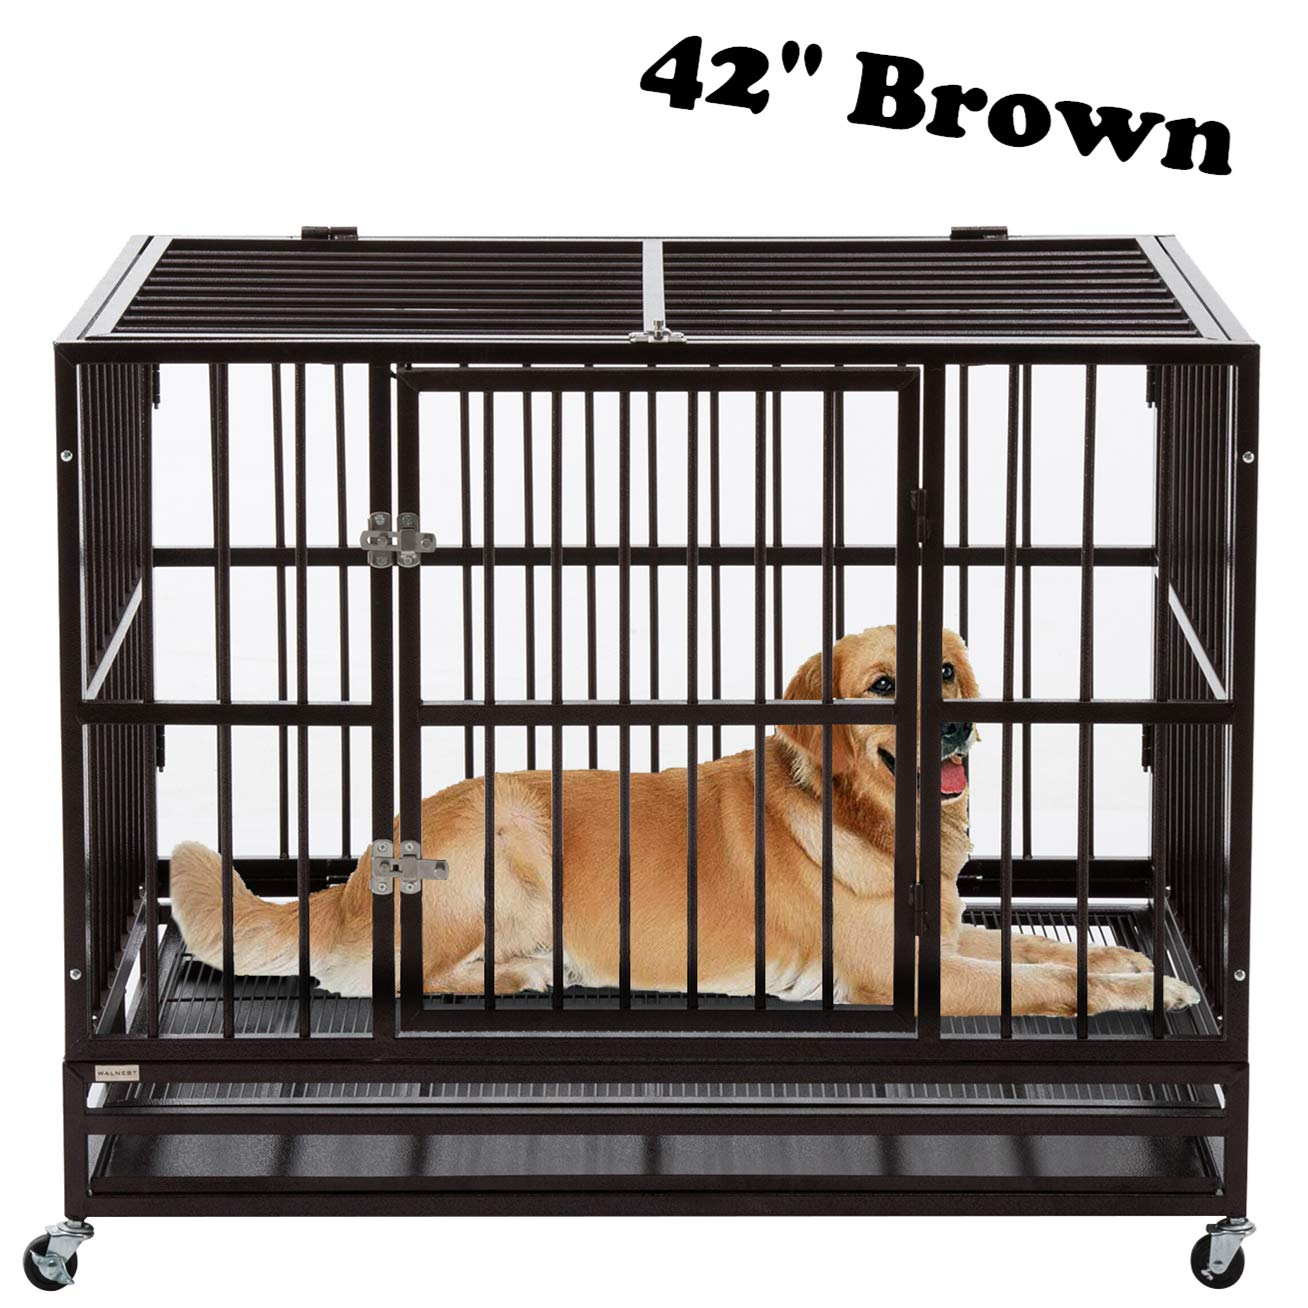 Sliverylake Xxl 42 Dog Cage Crate Kennel Heavy Duty Pet Playpen Cage Double Door With Rolling Wheels And Tray Amazon In Pet Supplies